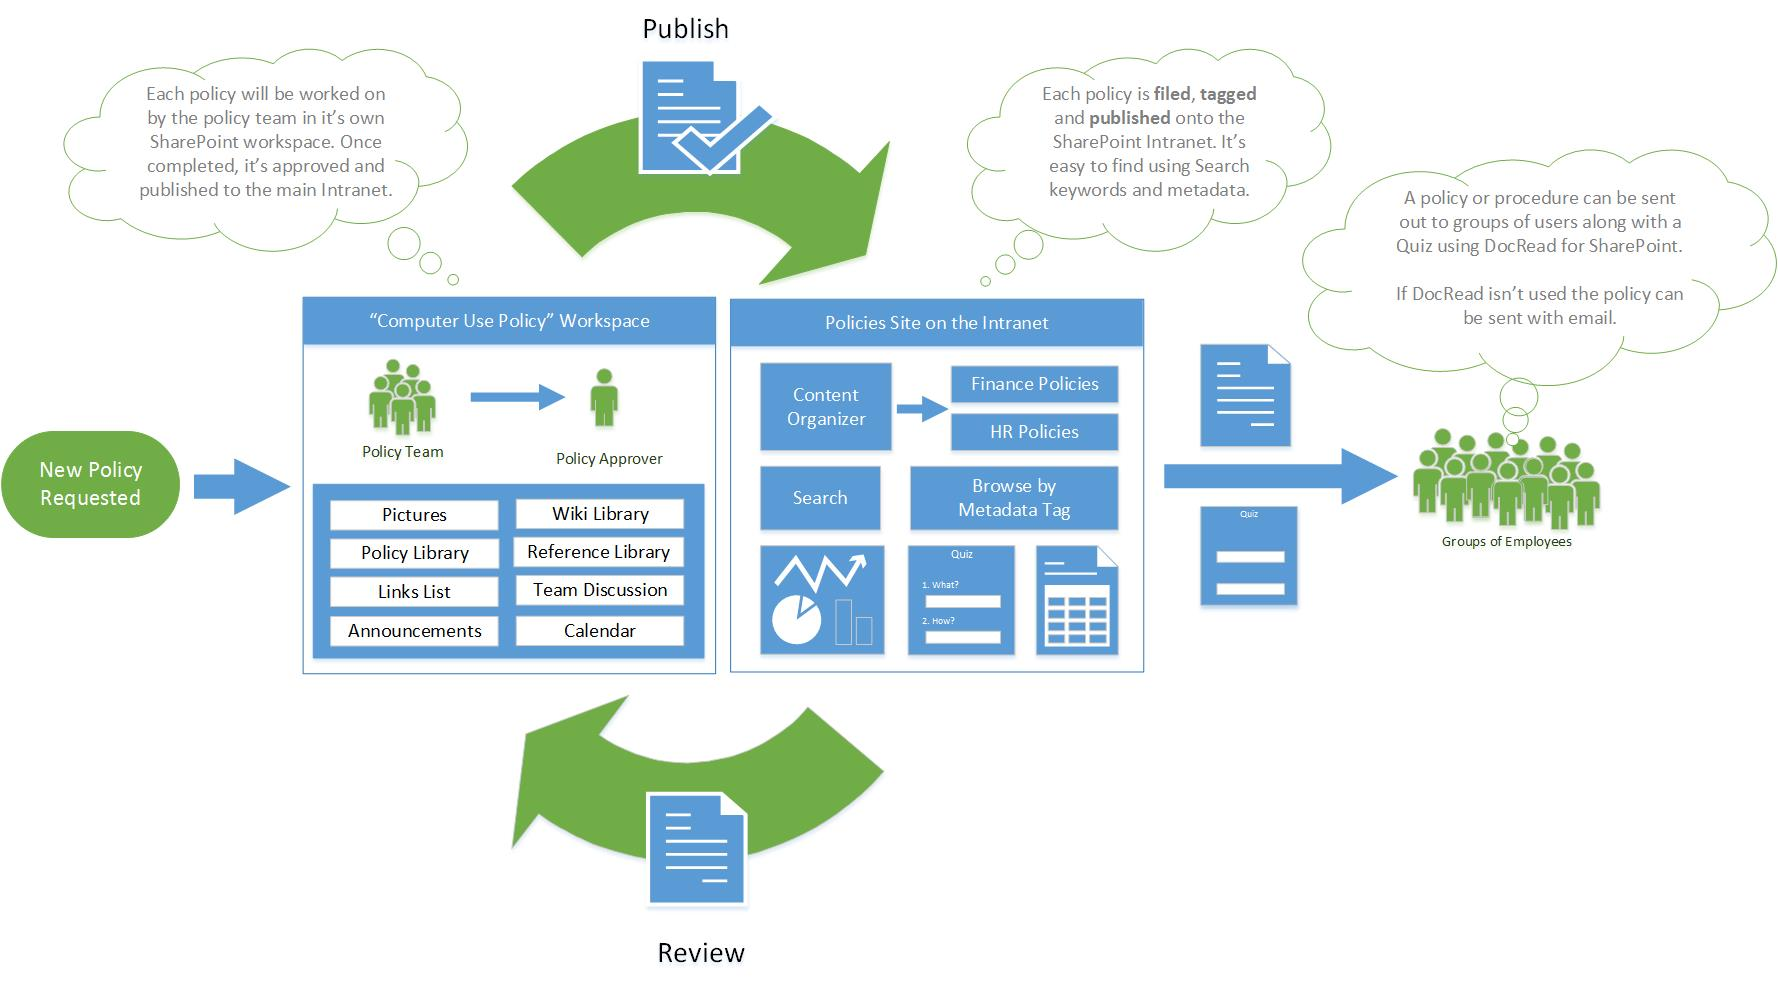 policy procedure life in sharepoint lifecycle of policy or procedure in sharepoint collaboris